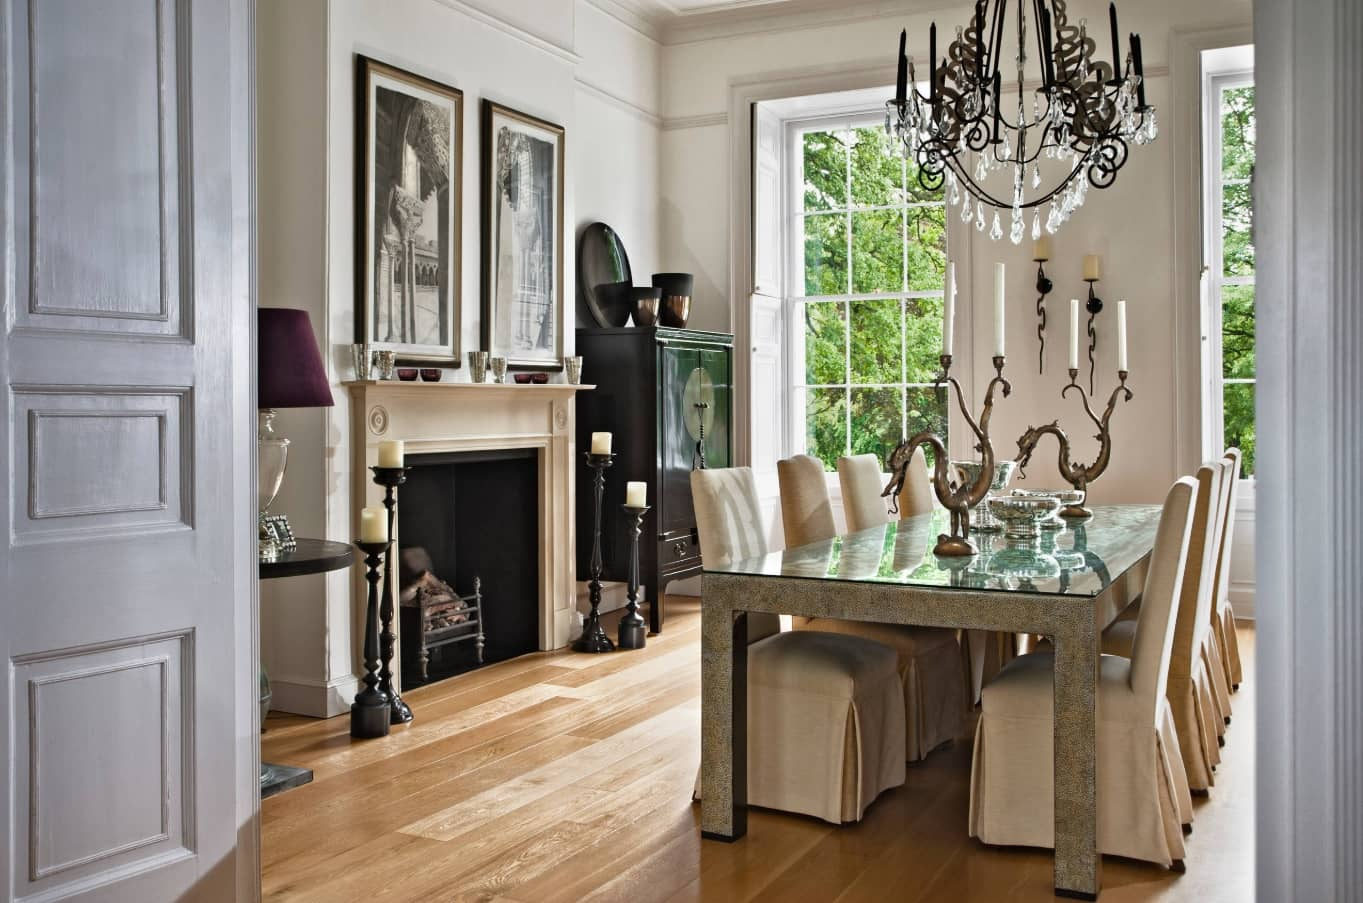 Quick Review of Types and Styles of Chandeliers. English classic interior with the sash window and restrained white colored walls